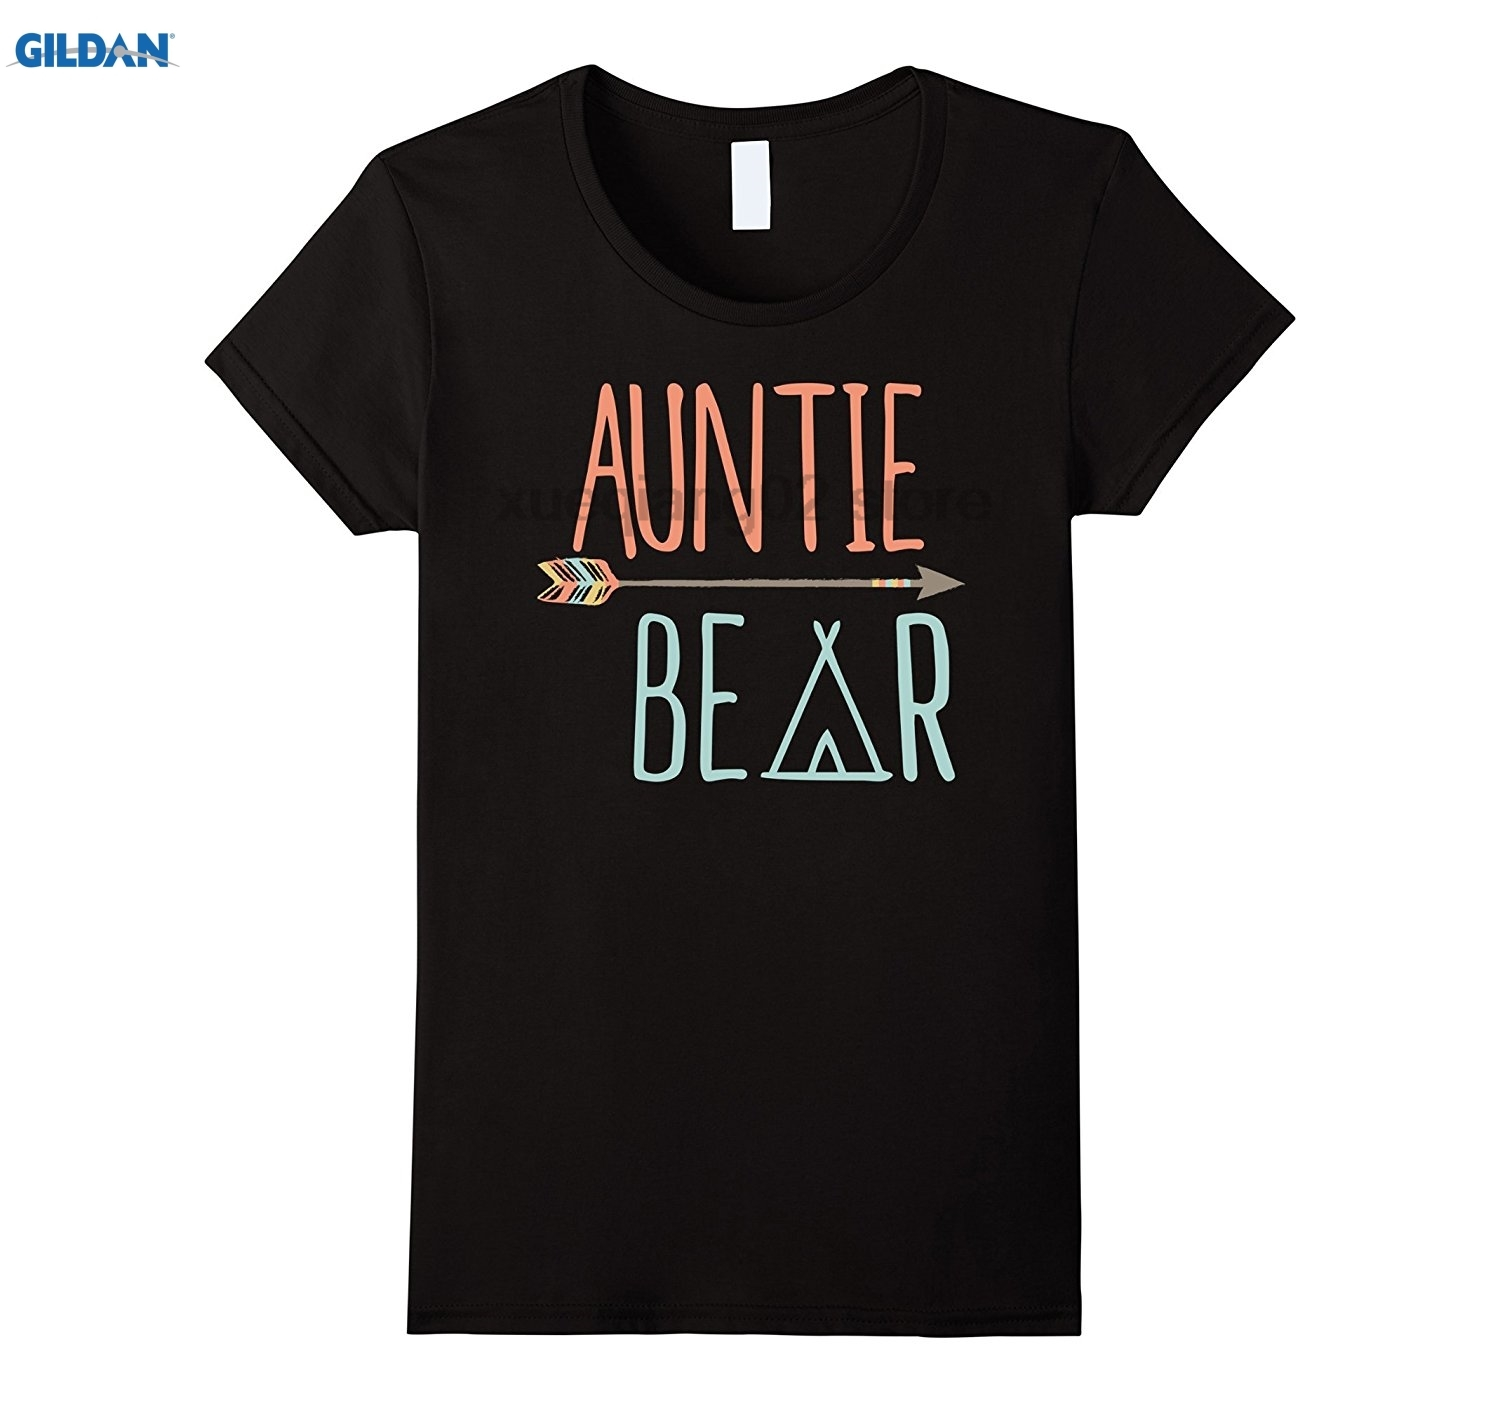 GILDAN Womens Tribal Arrow Auntie Bear Shirt Aunt T-Shirt